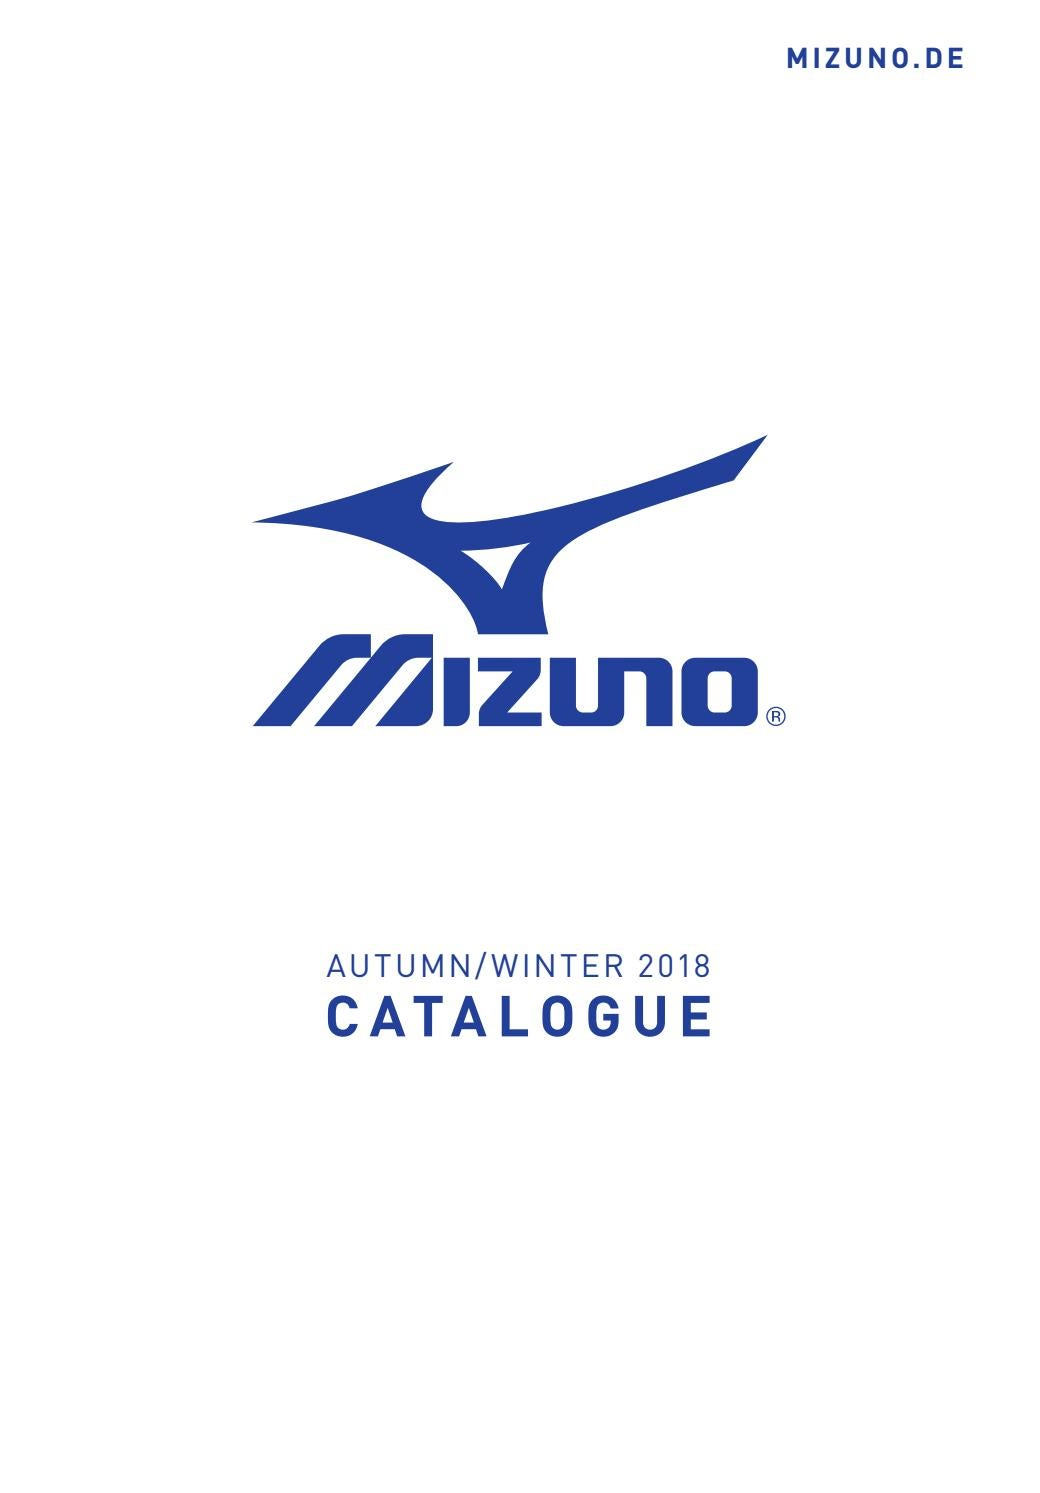 mizuno volleyball online shop europe england logo adidas